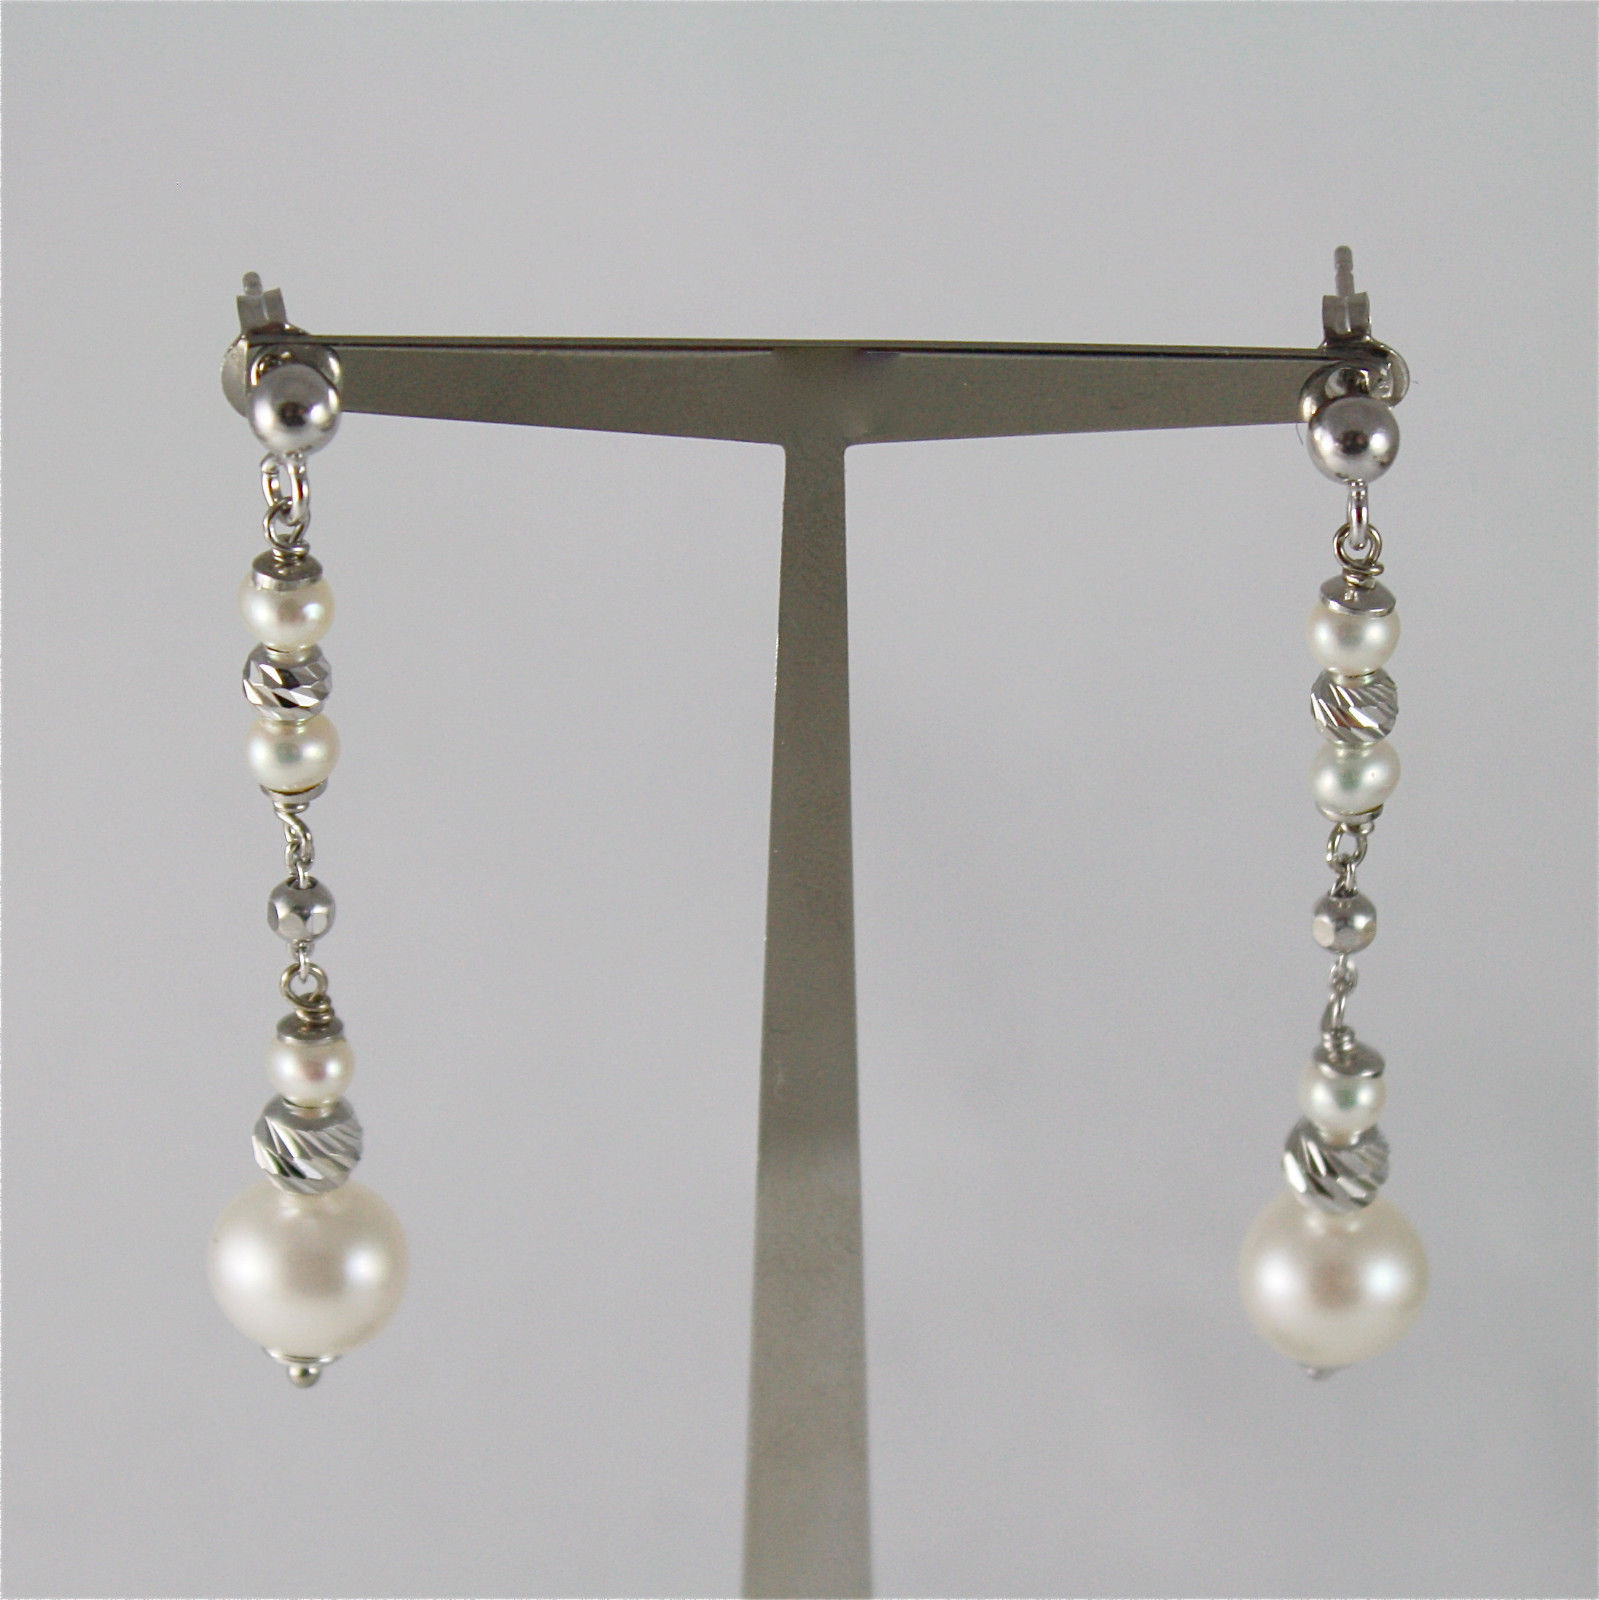 925 SILVER EARRINGS WITH 8 MM ROUND FW PEARL AND FACETED BALLS ITALIAN JEWELLERY